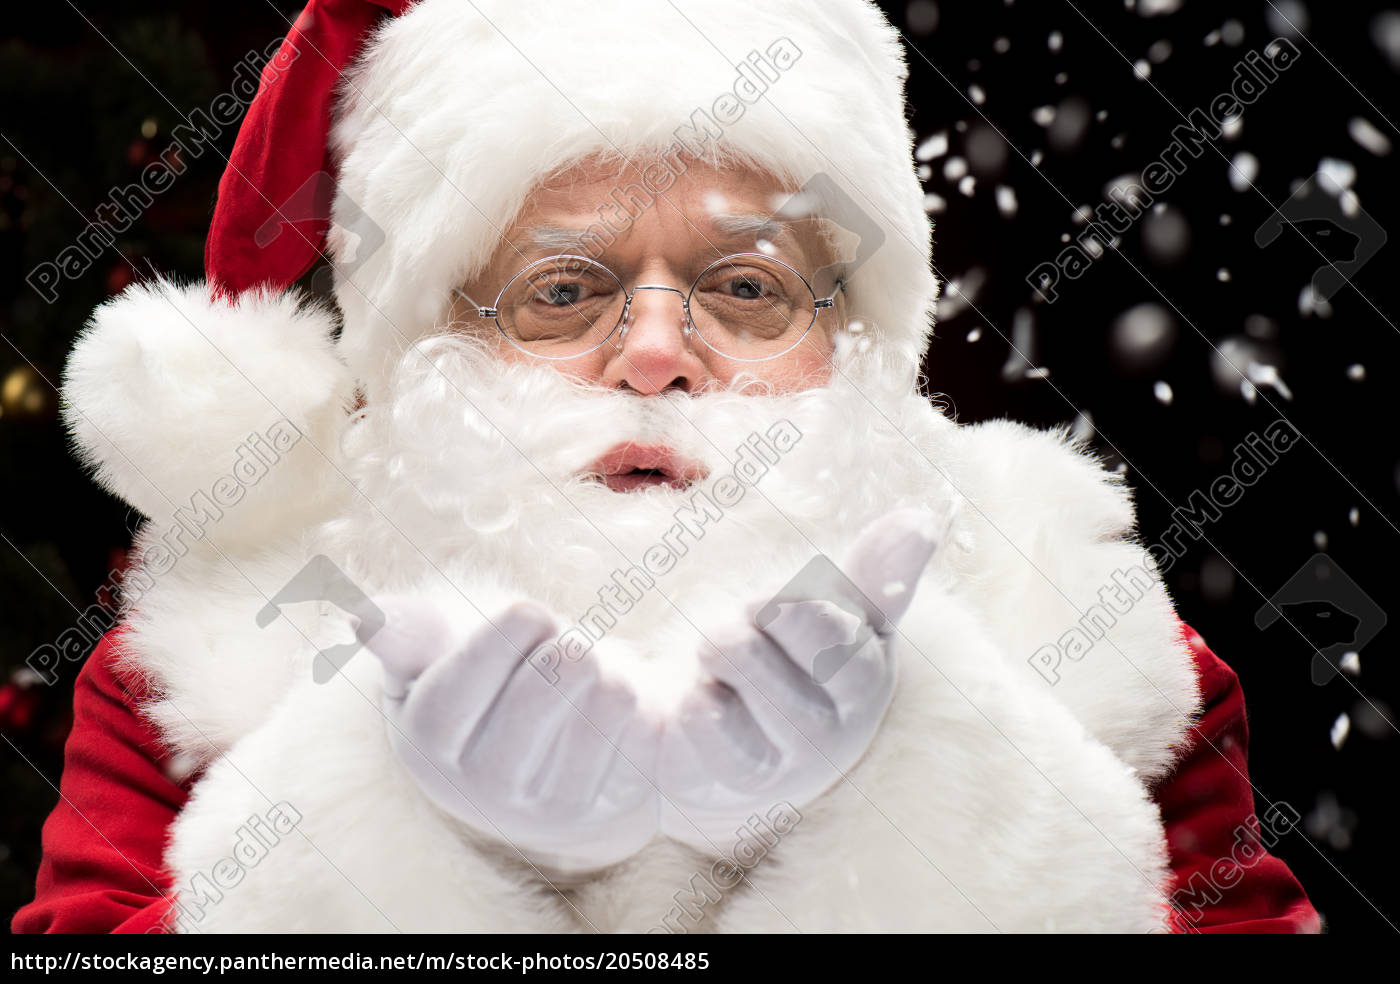 santa, claus, blowing, snowflakes - 20508485